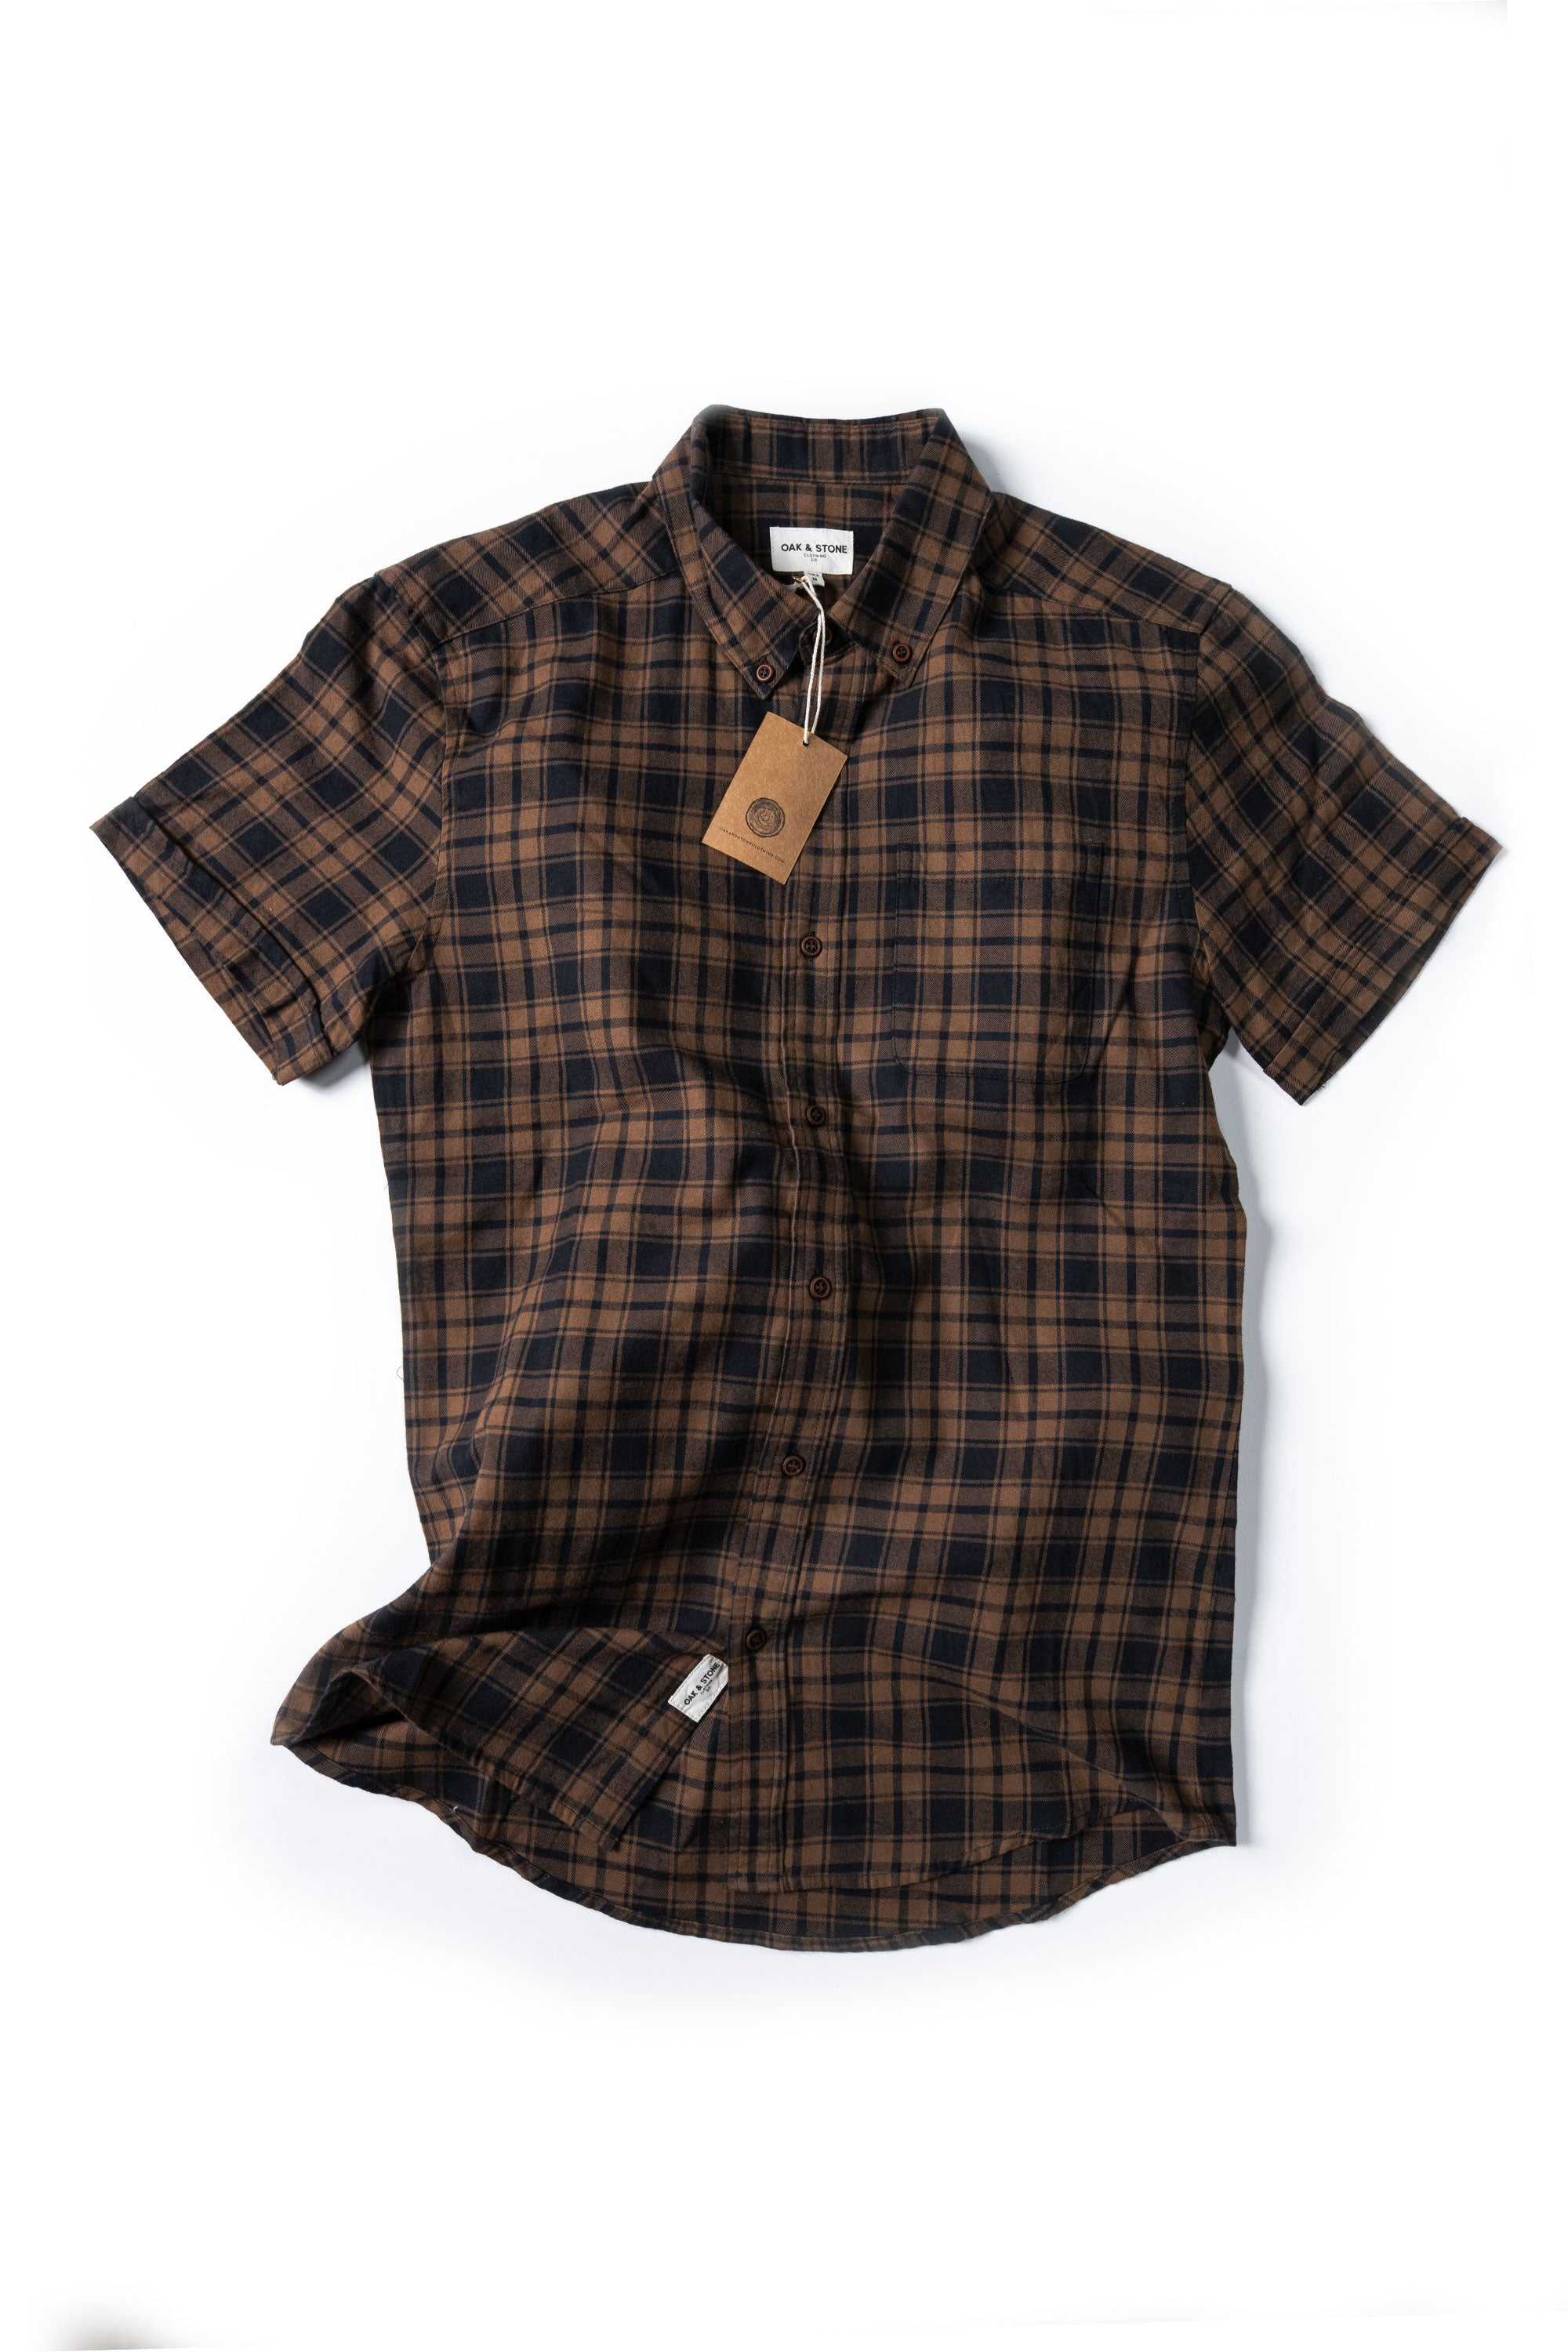 The Essential S/S - Brown - Oak & Stone Clothing Co.